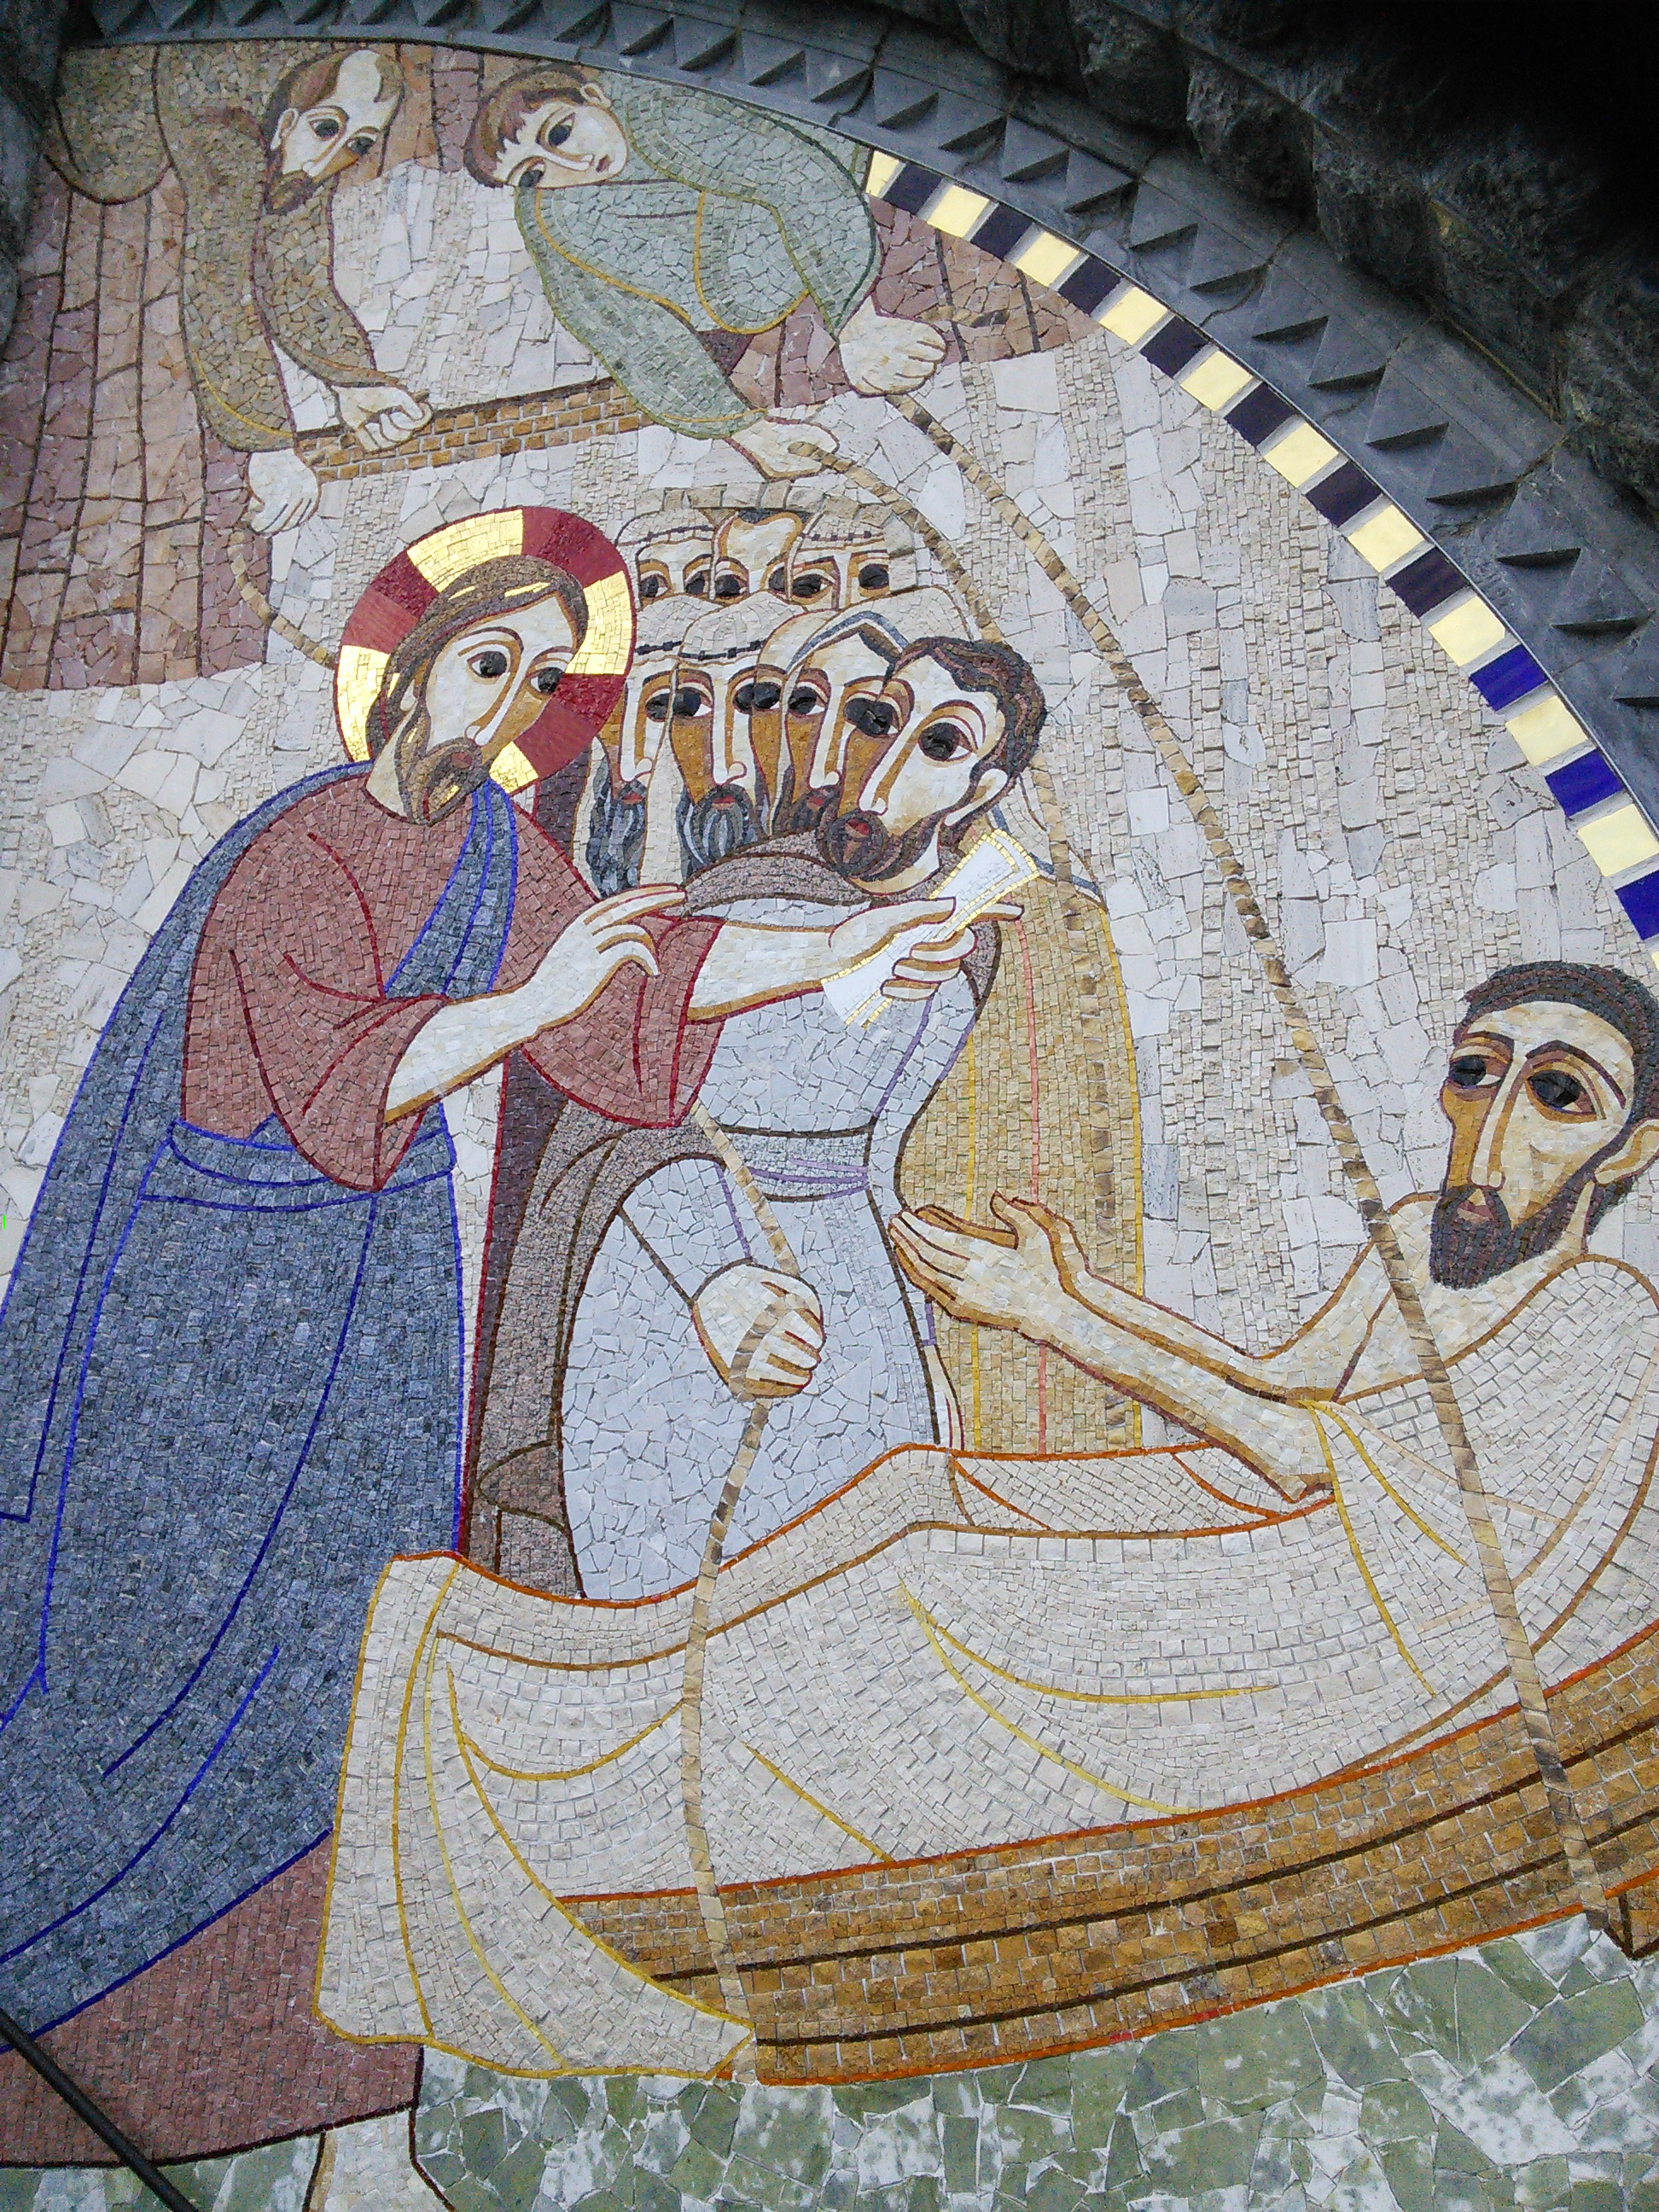 Jesus healing the paralysed man. Mosaic from the Rosary Basilica in Lourdes